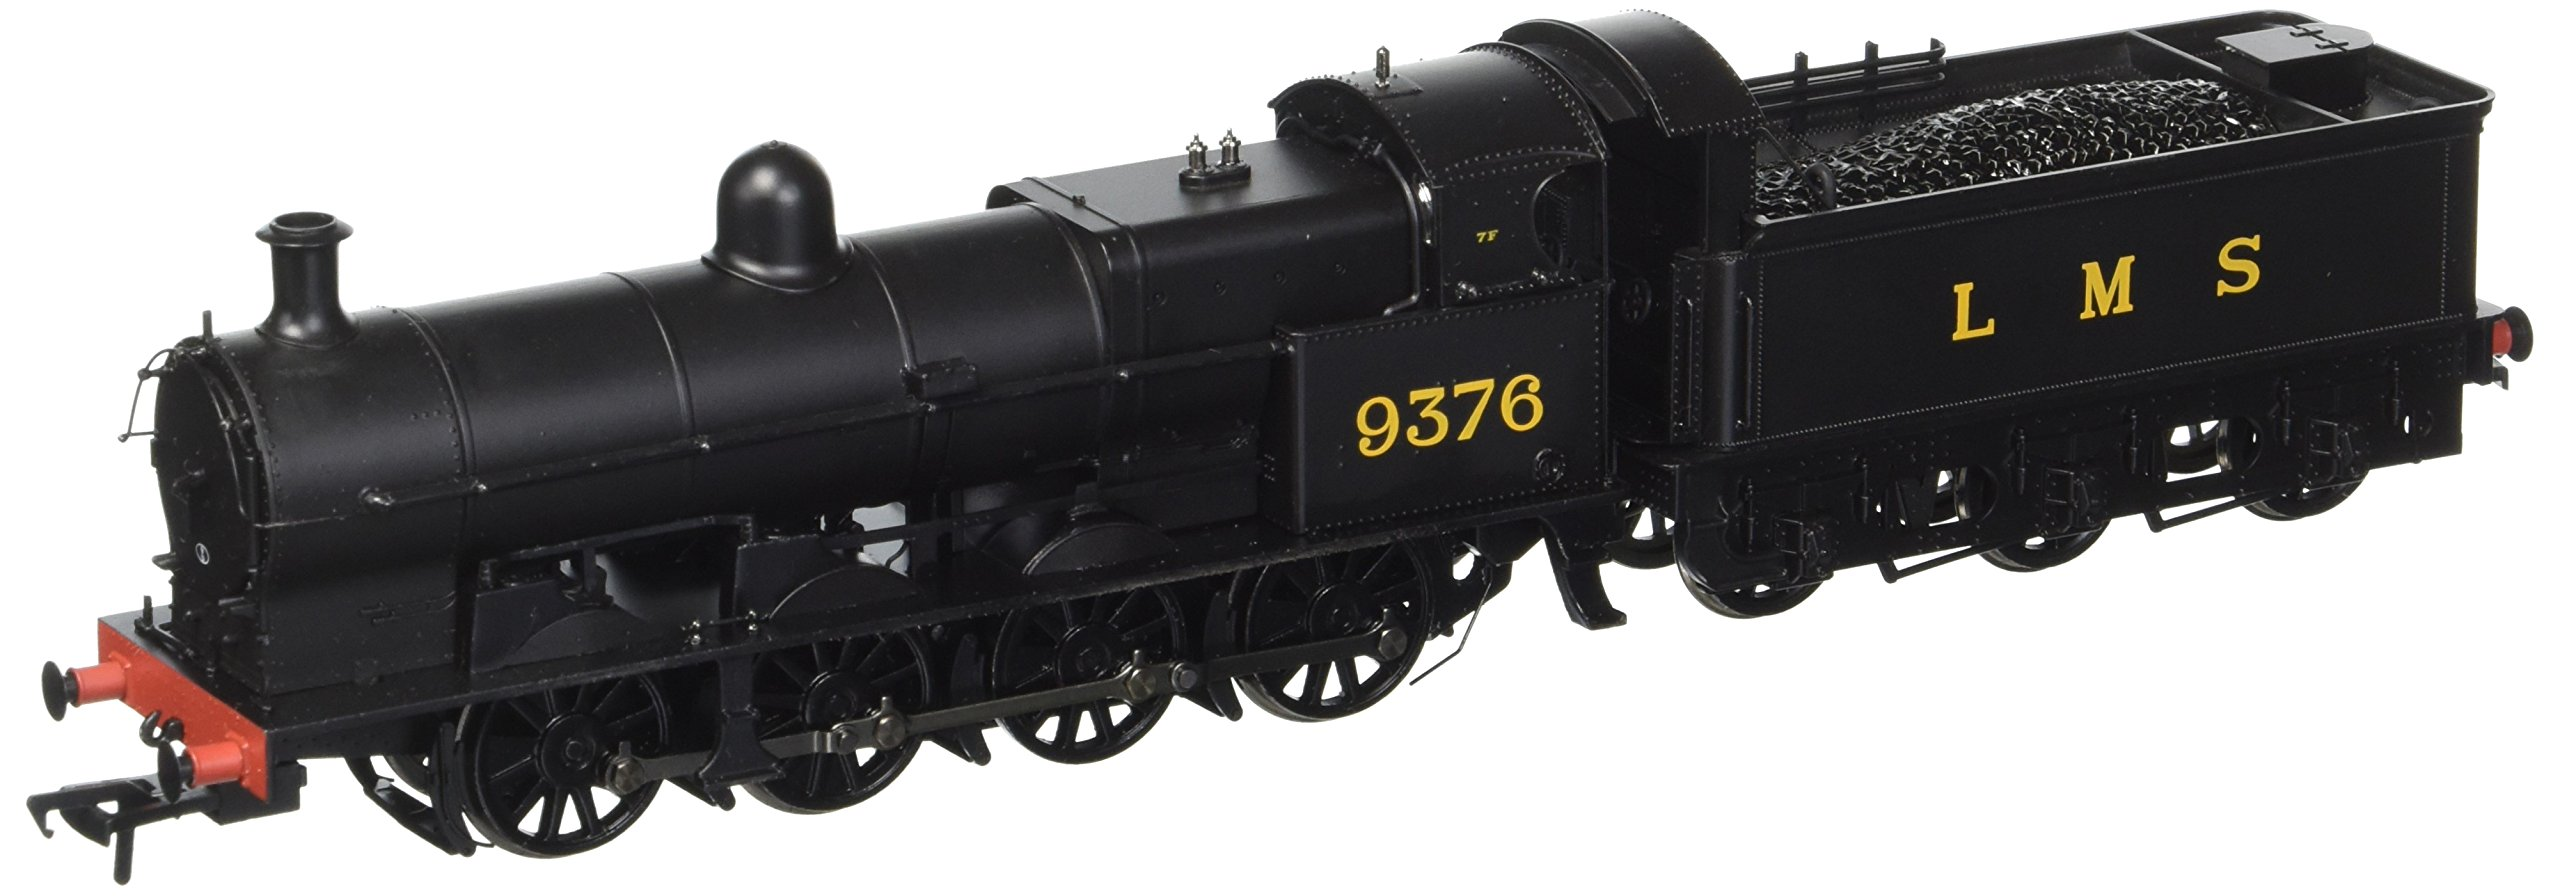 Busch 31-480 G2A 9376 Lms Black with Tender Back Cab OO Scale Model Train